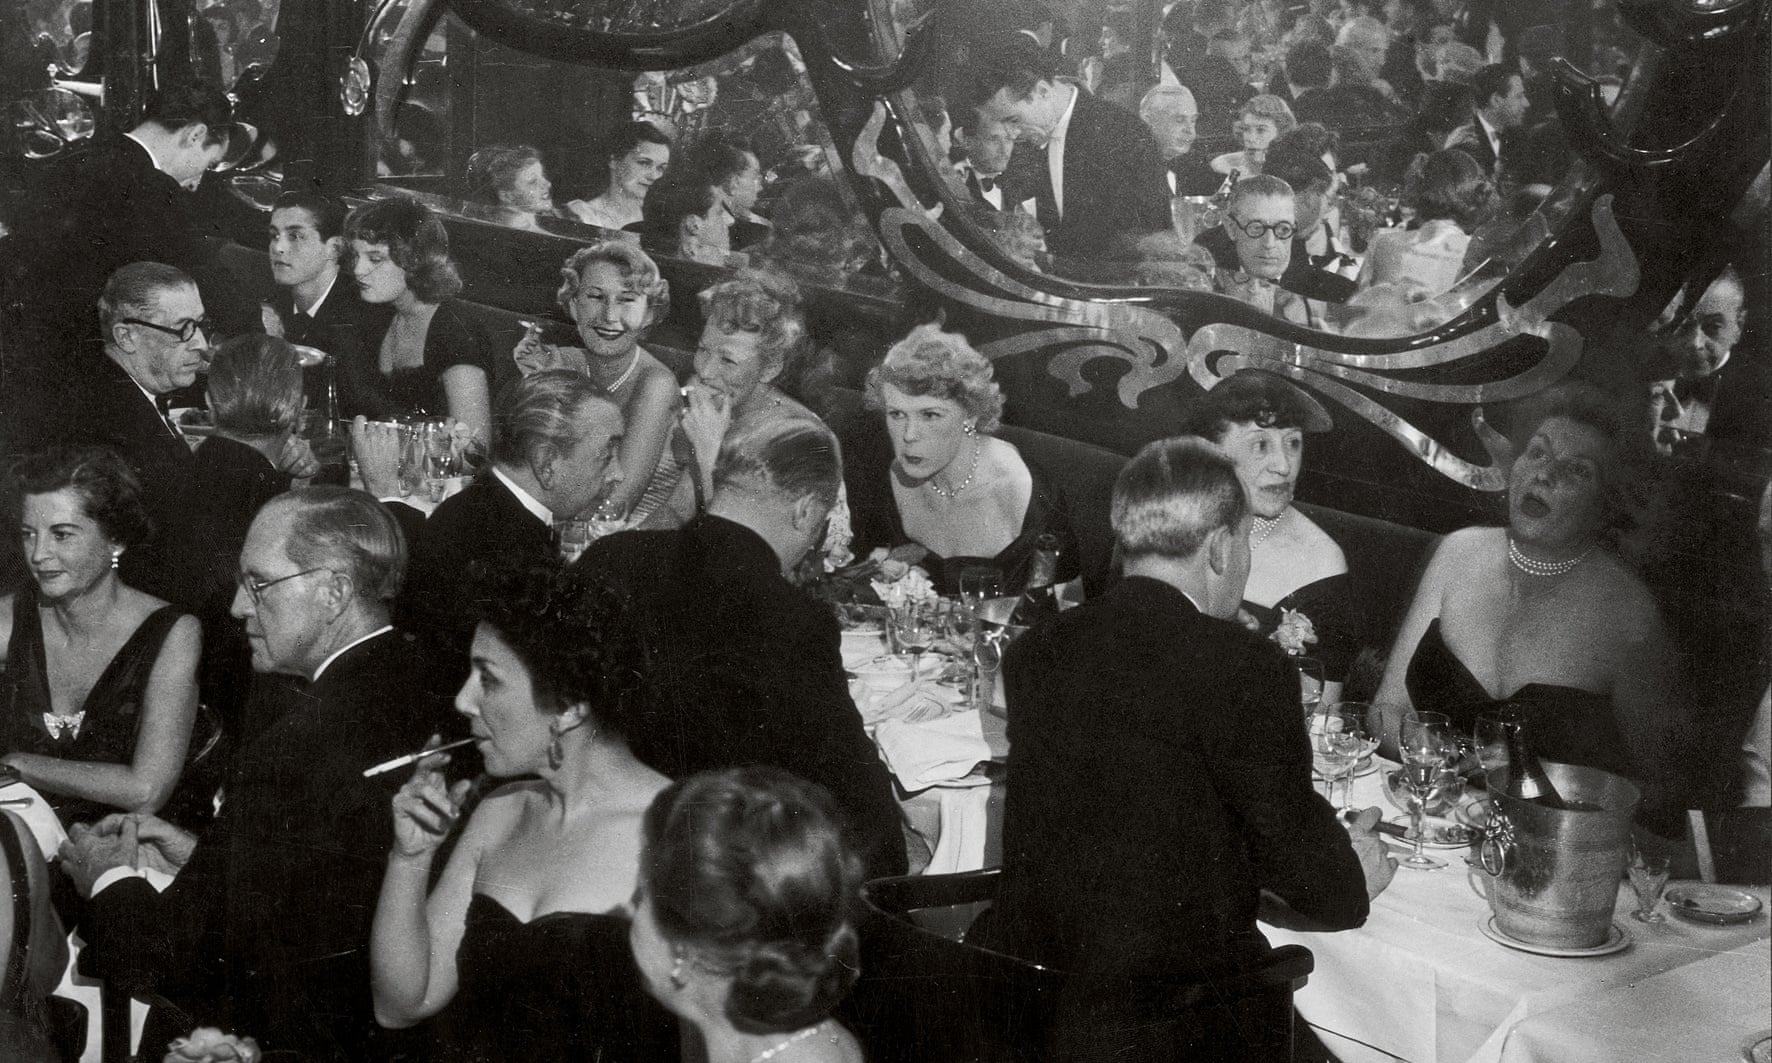 Gala soiree at Maxim's, 1949. Photograph- Estate Brassaï Succession